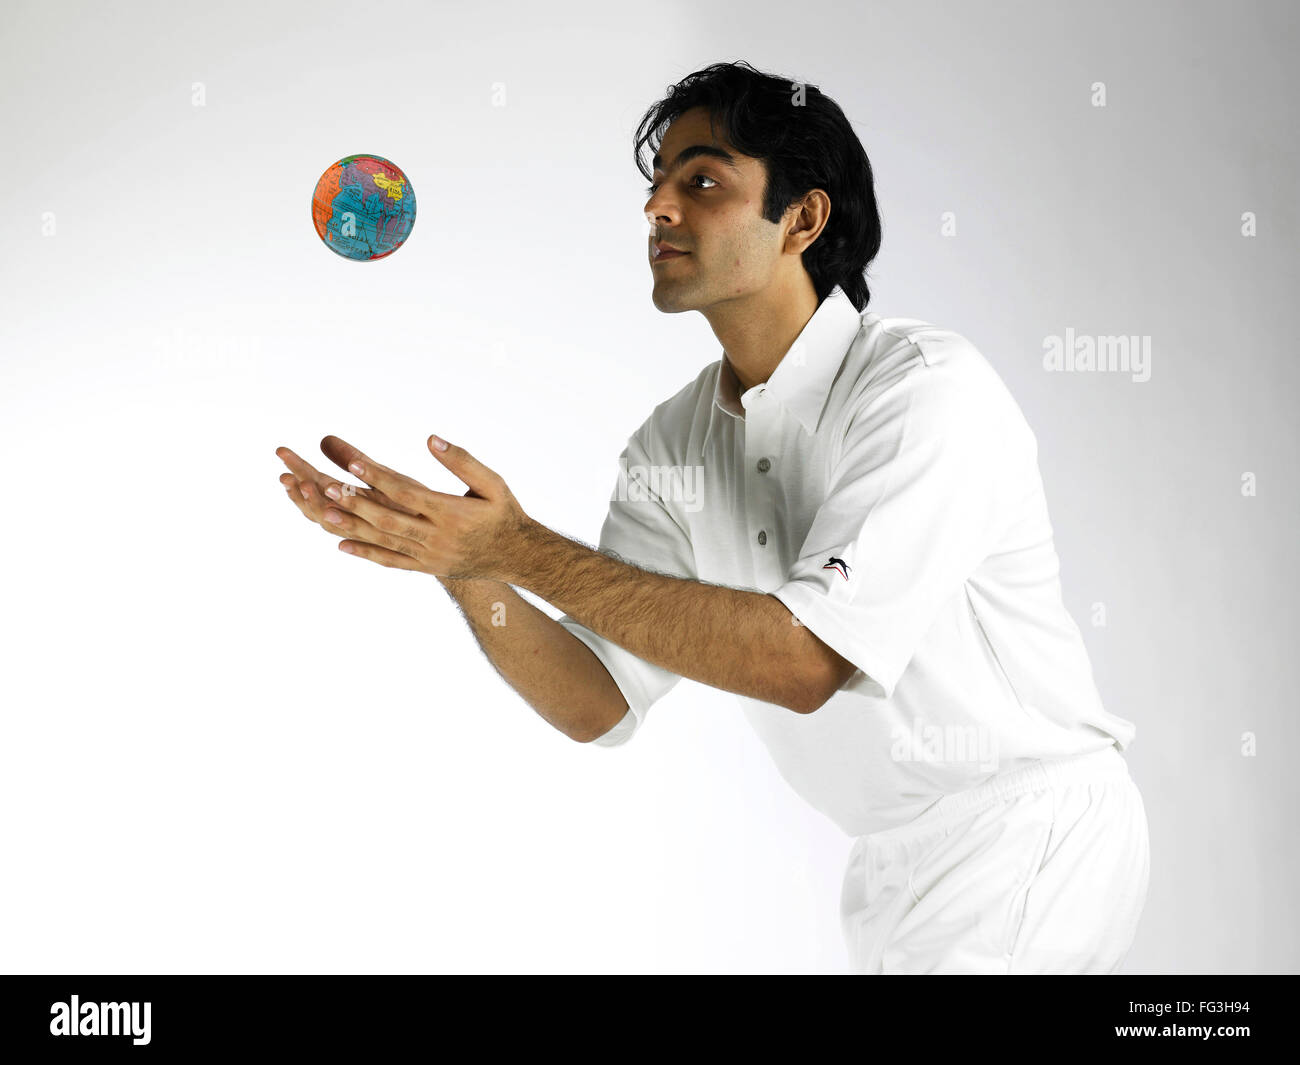 Indian bowler in action of catching globe MR#702A - Stock Image